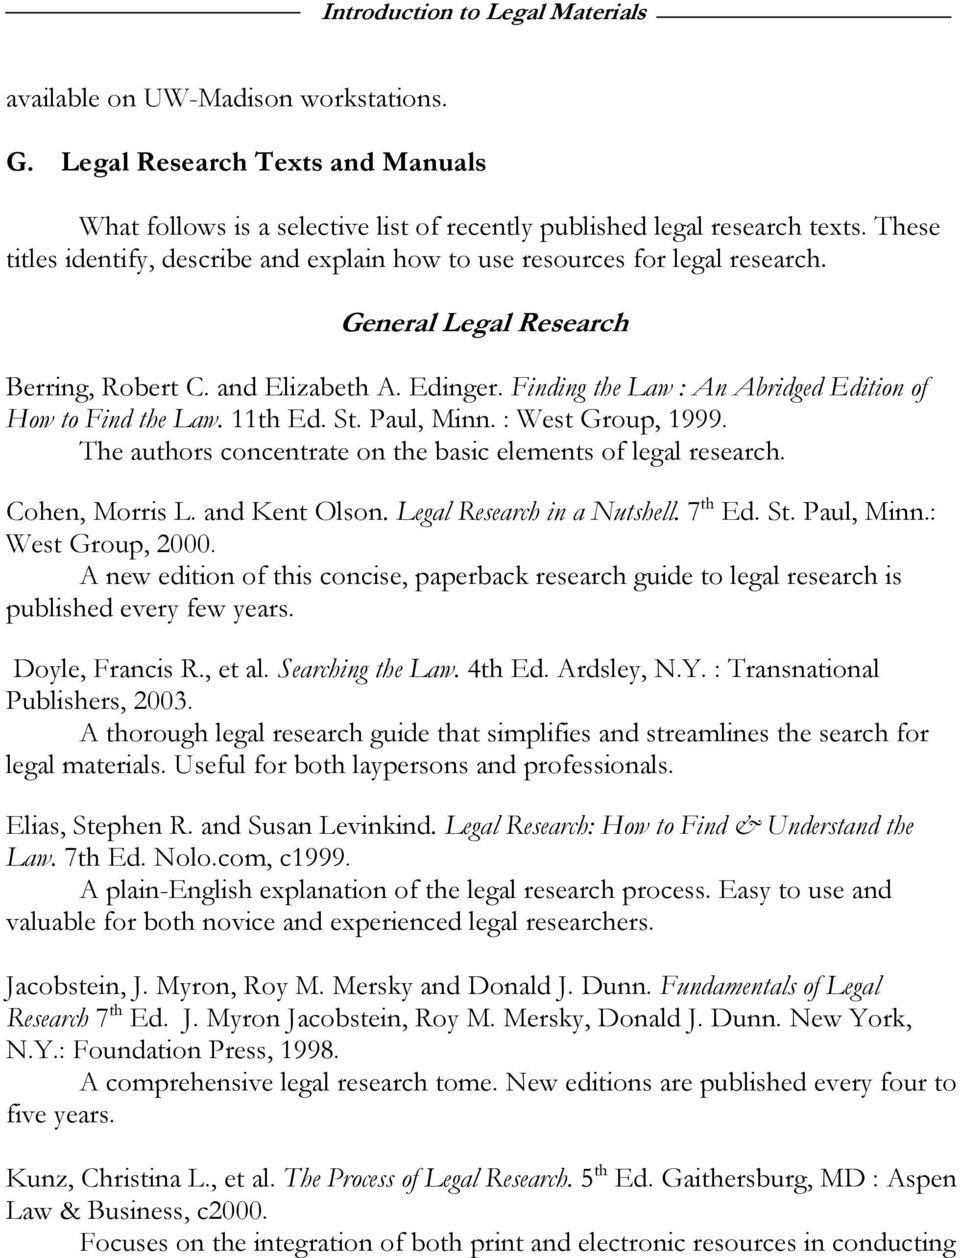 Finding the Law : An Abridged Edition of How to Find the Law. 11th Ed. St. Paul, Minn. : West Group, 1999. The authors concentrate on the basic elements of legal research. Cohen, Morris L.